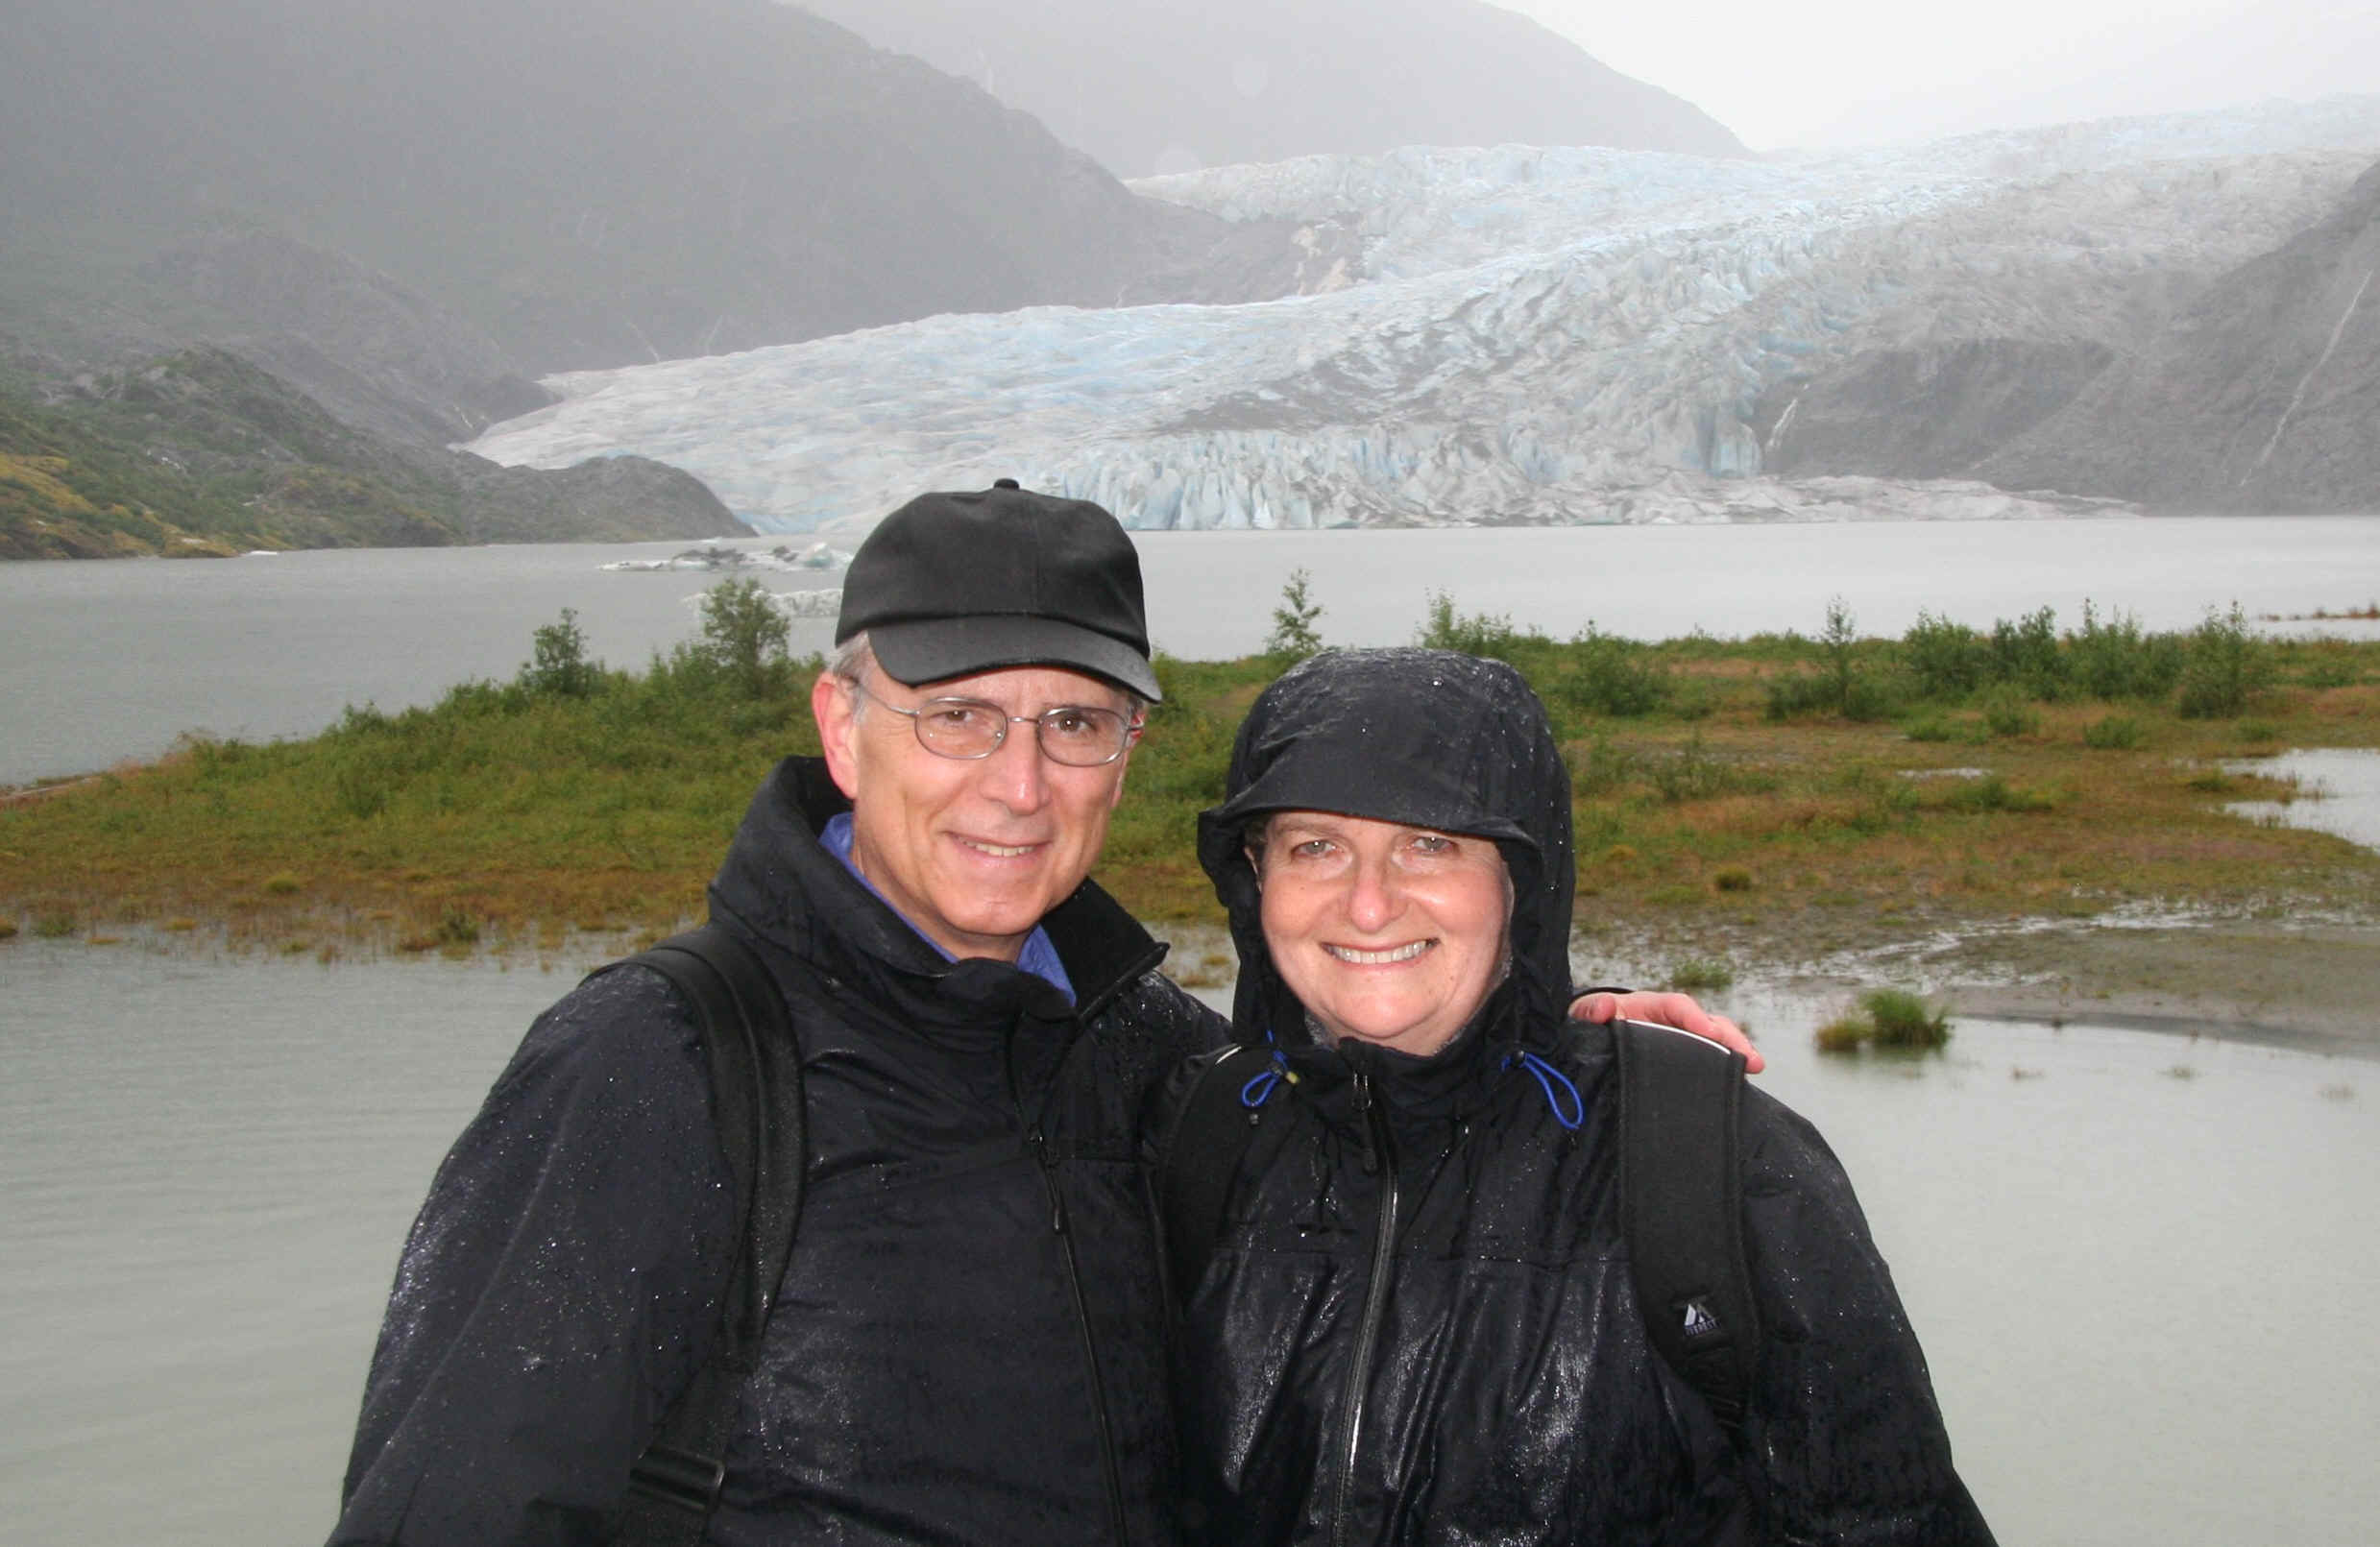 Visit to Mendenhall Glacier and Whale Watching